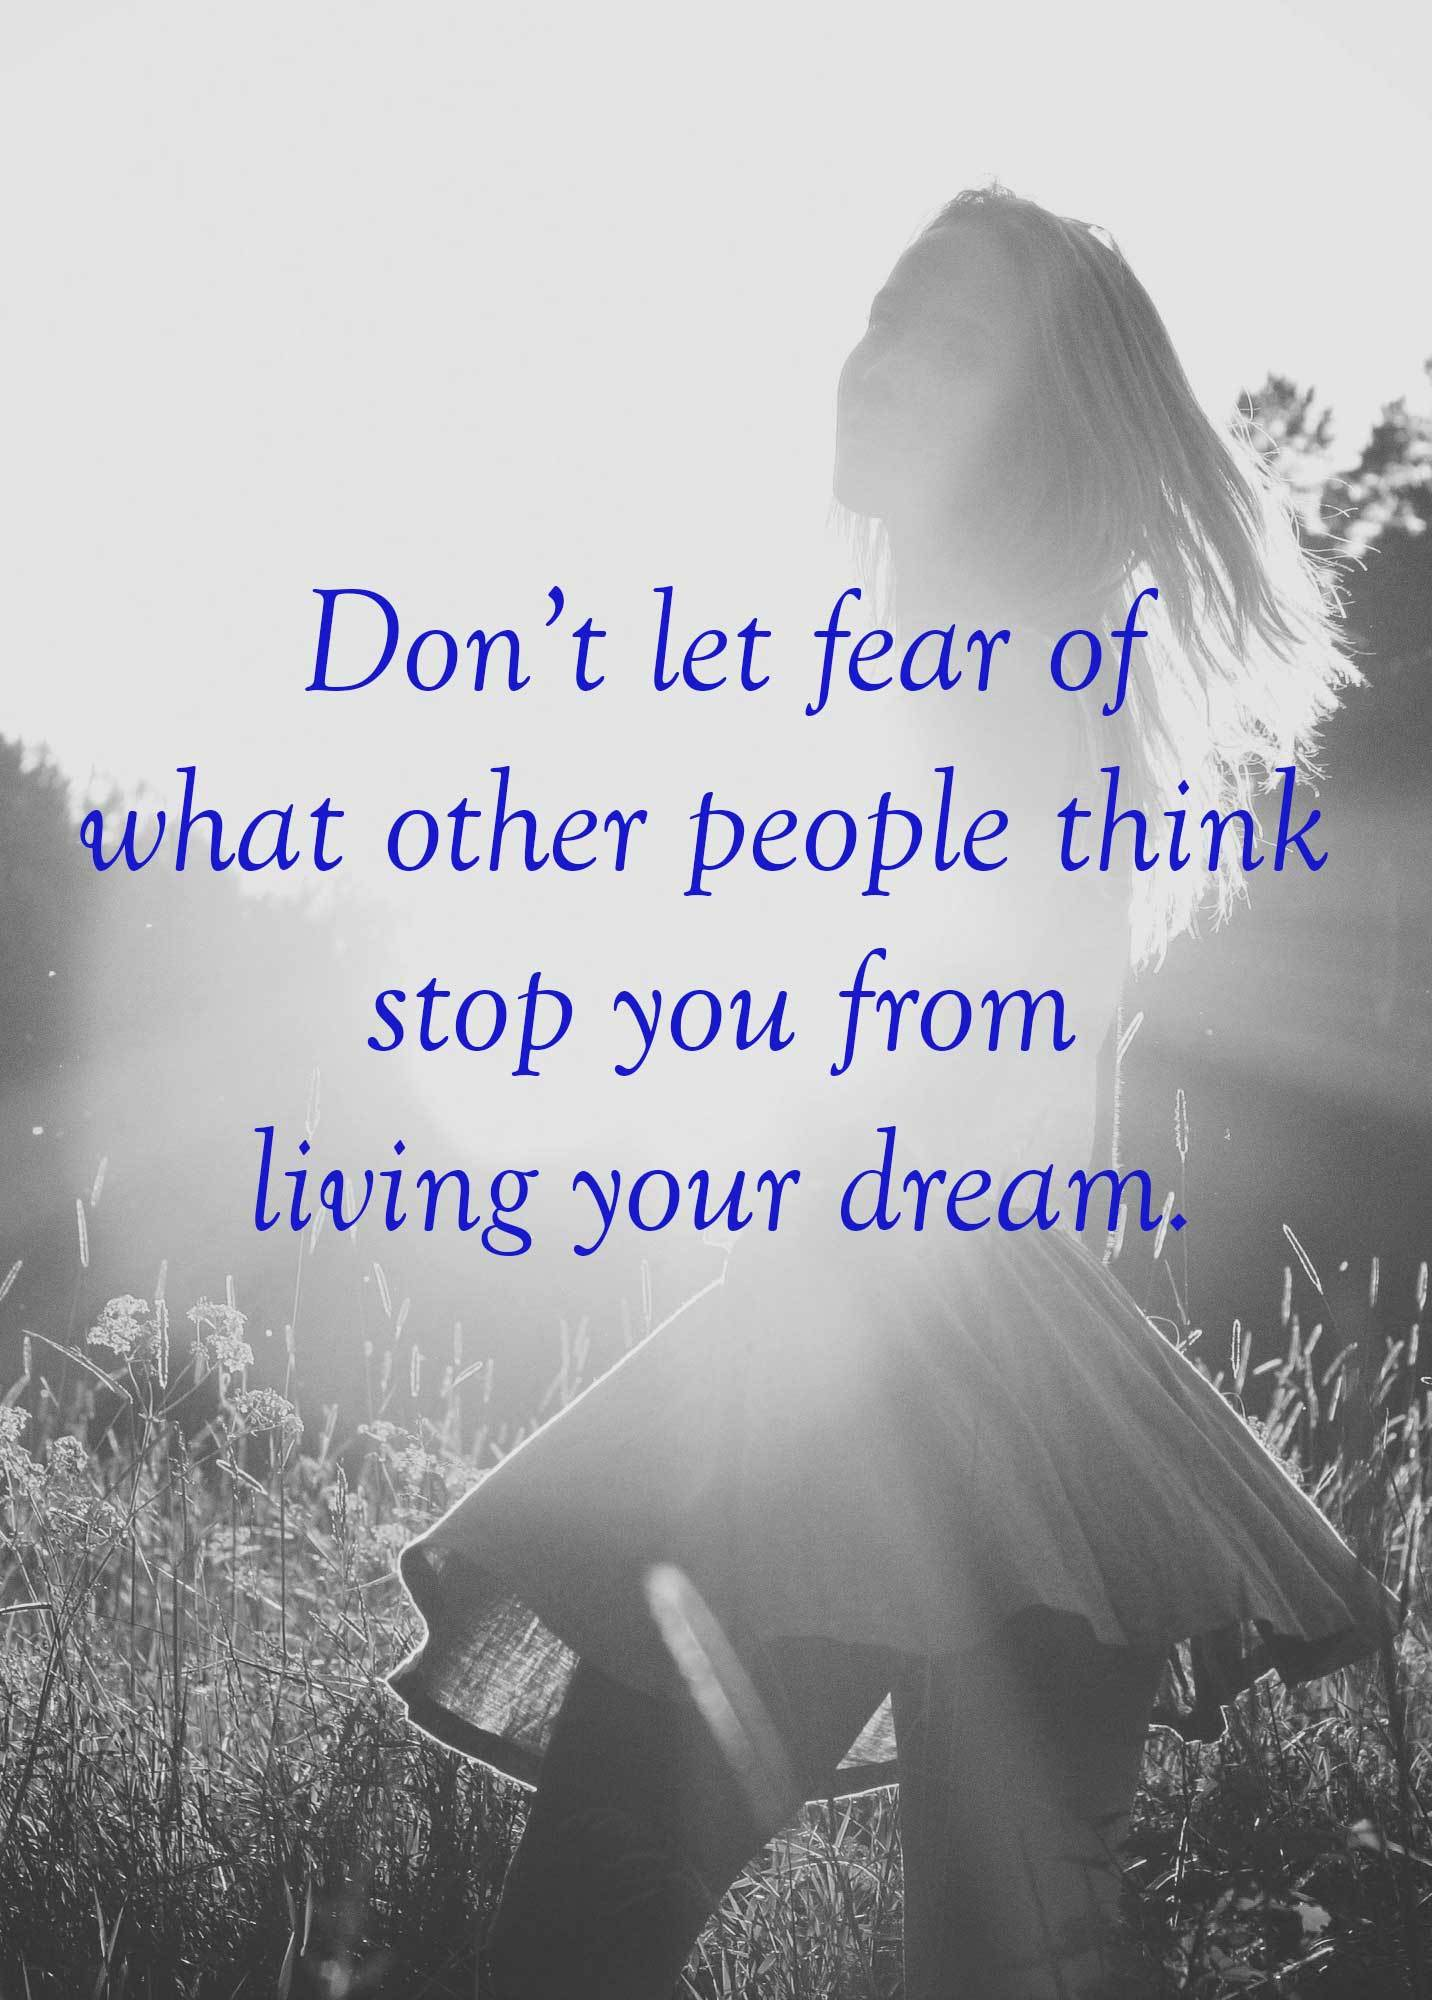 Don't let fear of what other people think stop you from living your dream.